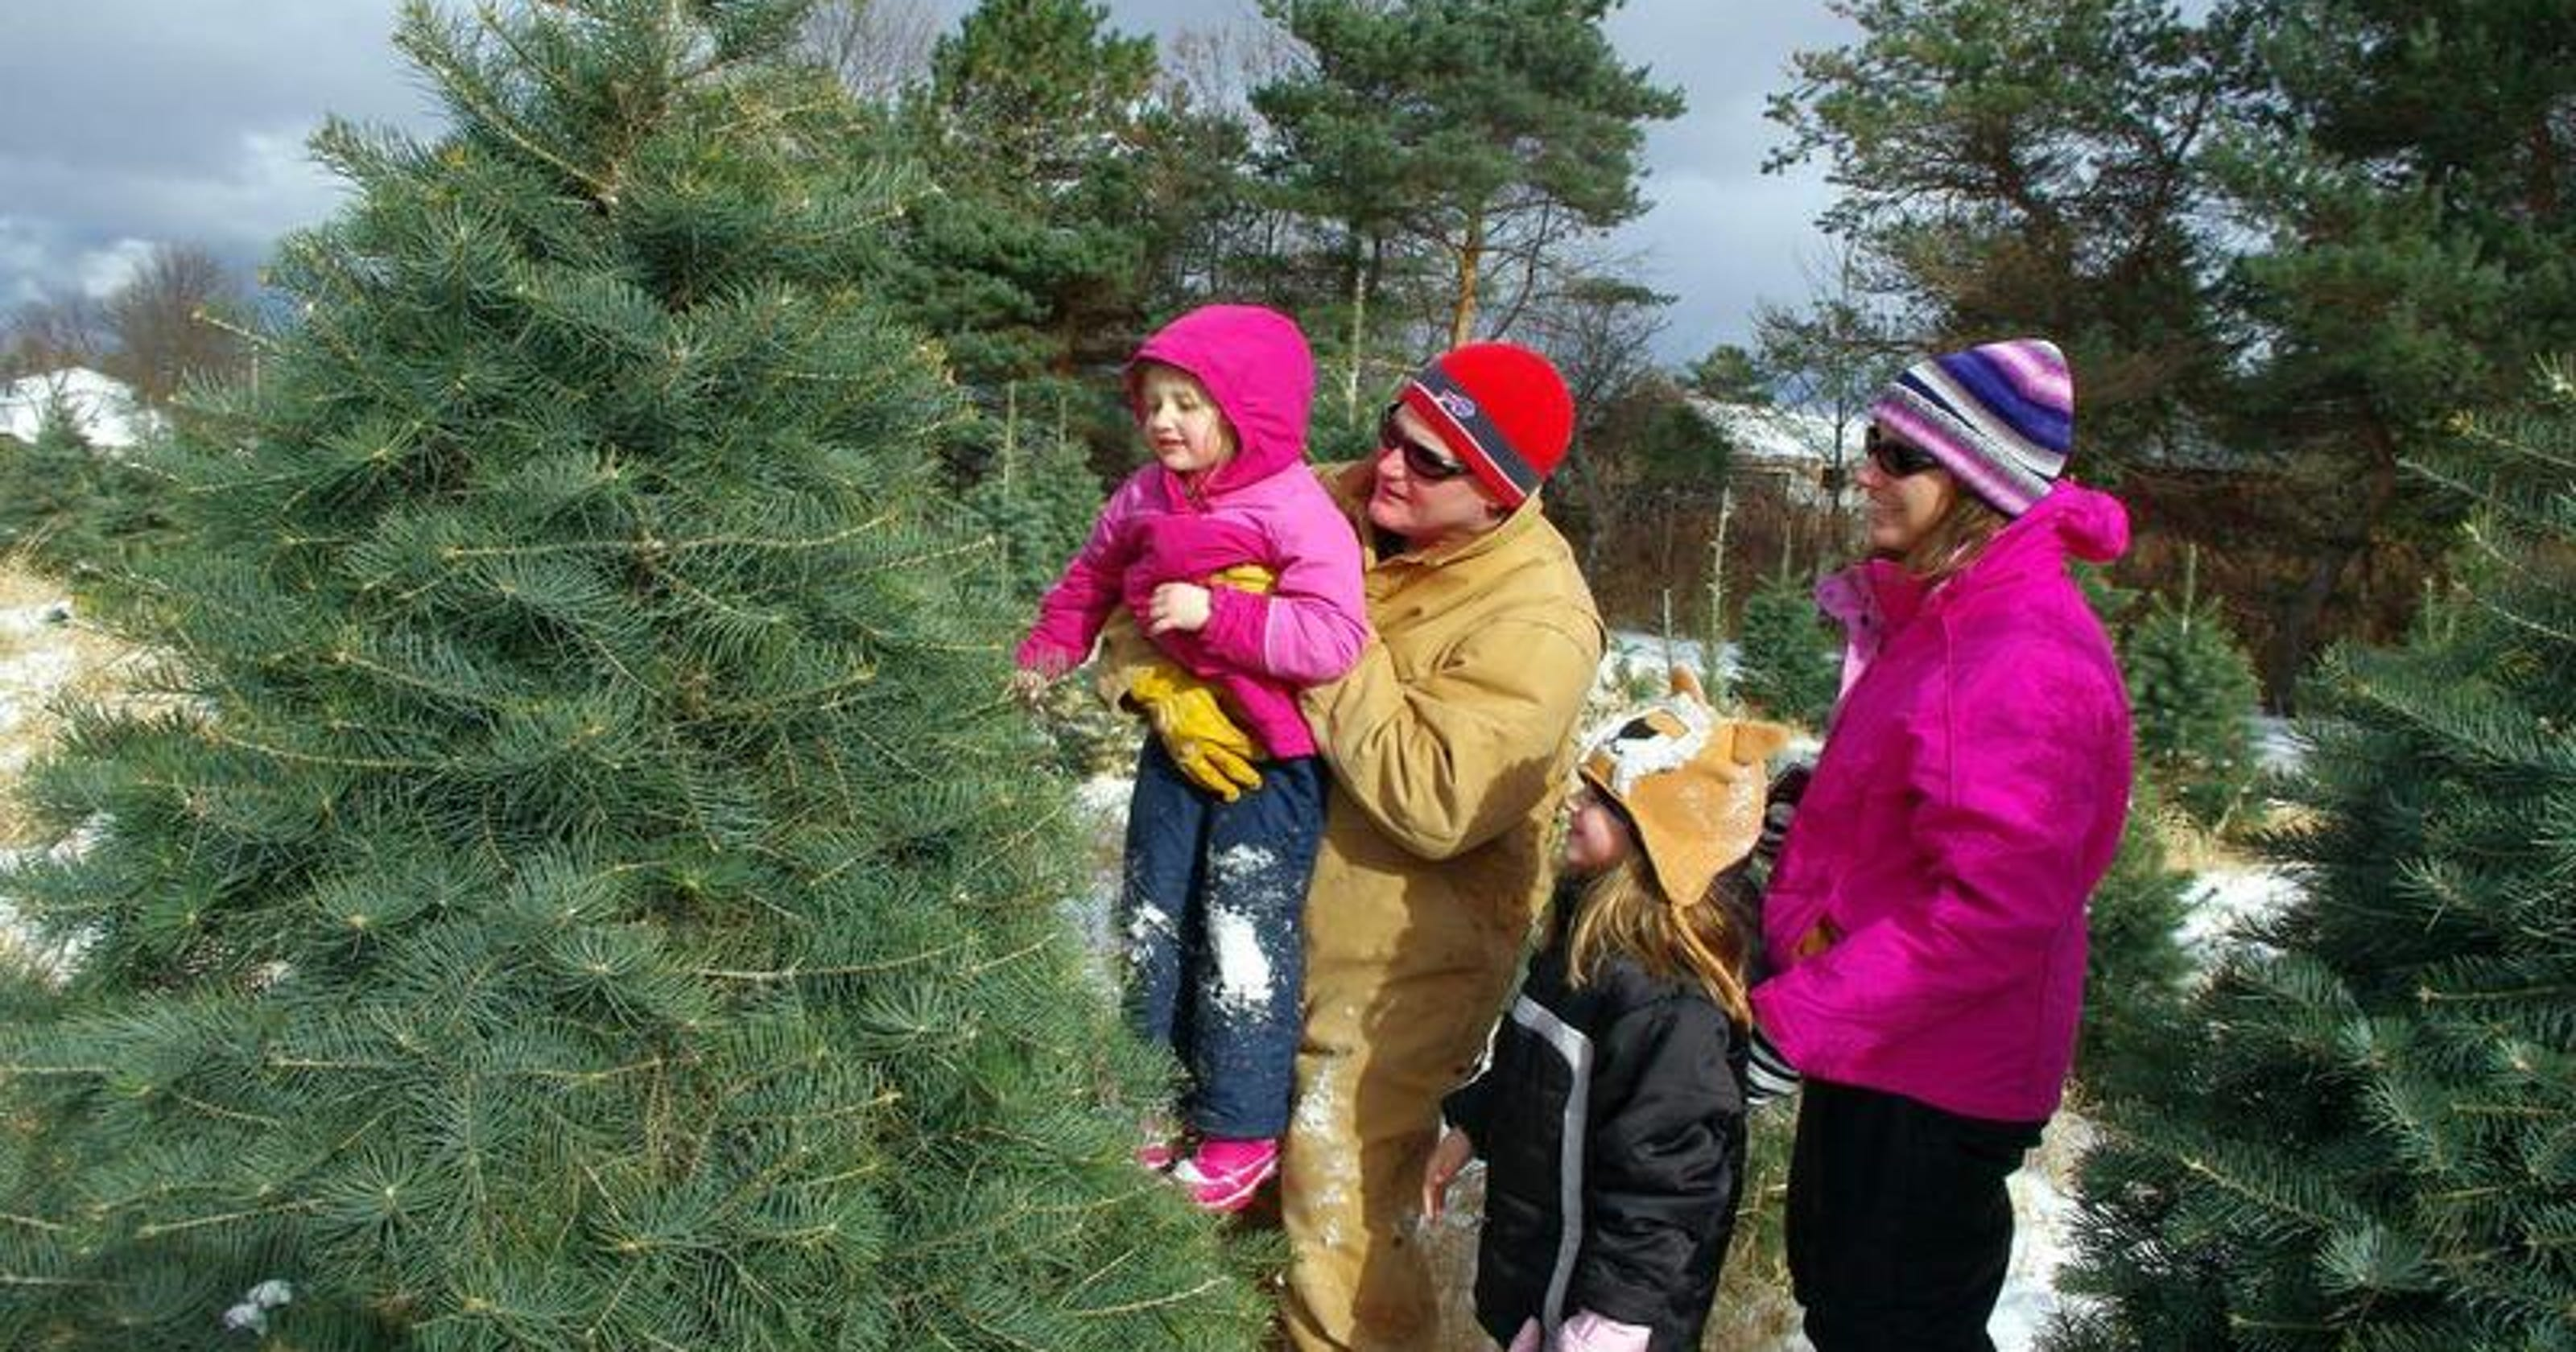 Cut Your Own Christmas Tree Near Me.Where To Cut Your Own Christmas Tree In Rochester